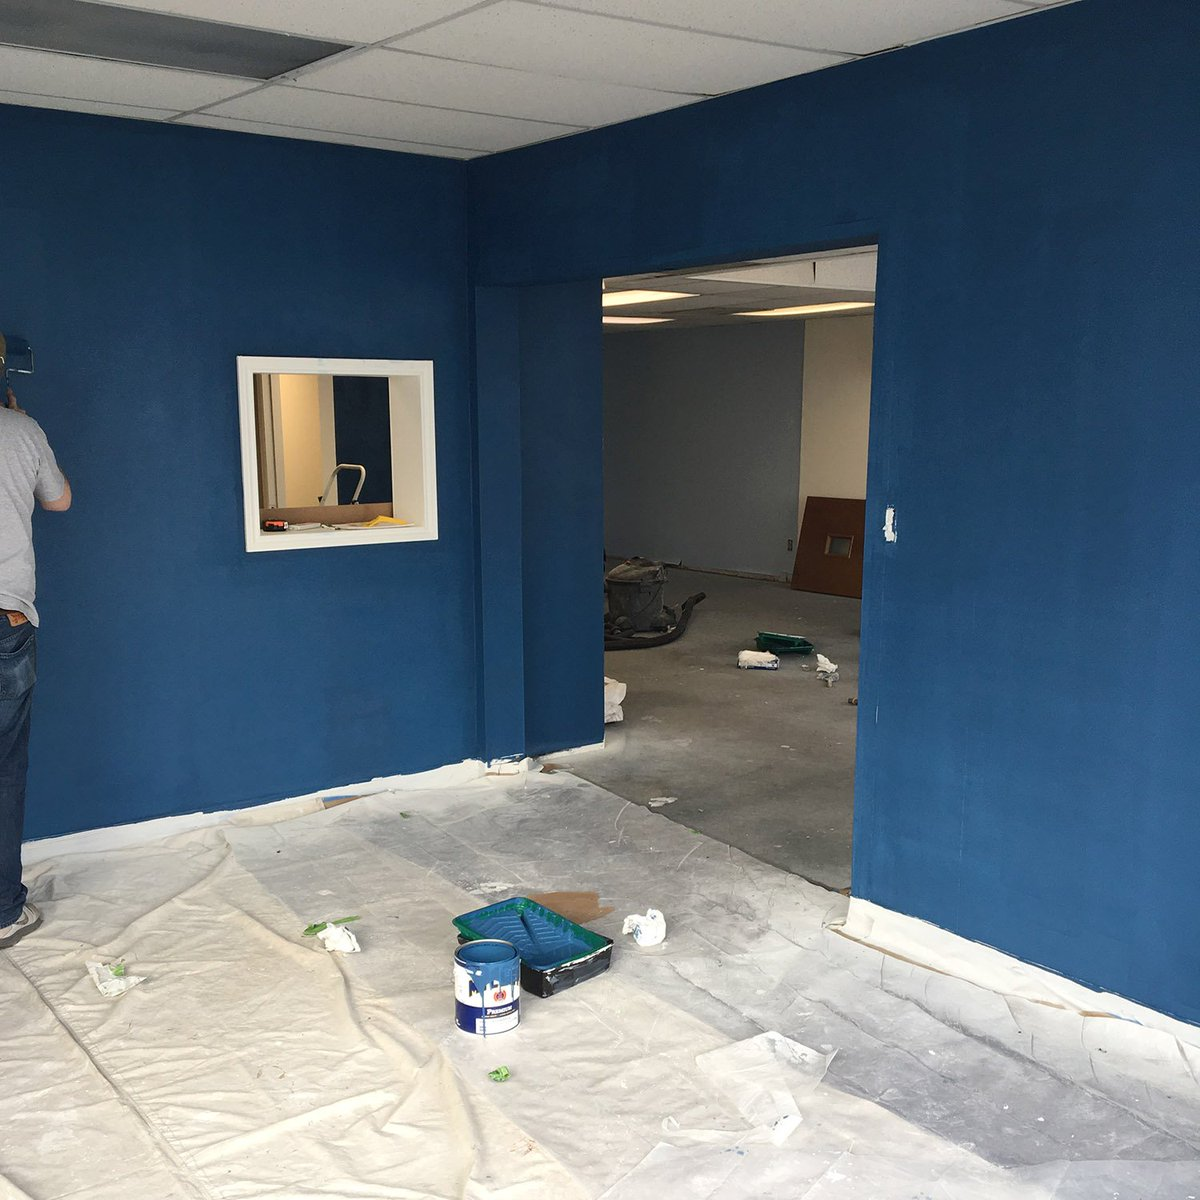 Working hard on the new office space... coming together! Dark blue ftw and love the new slot wall for samples.   #newofficespace <br>http://pic.twitter.com/UNcAON0Pg7